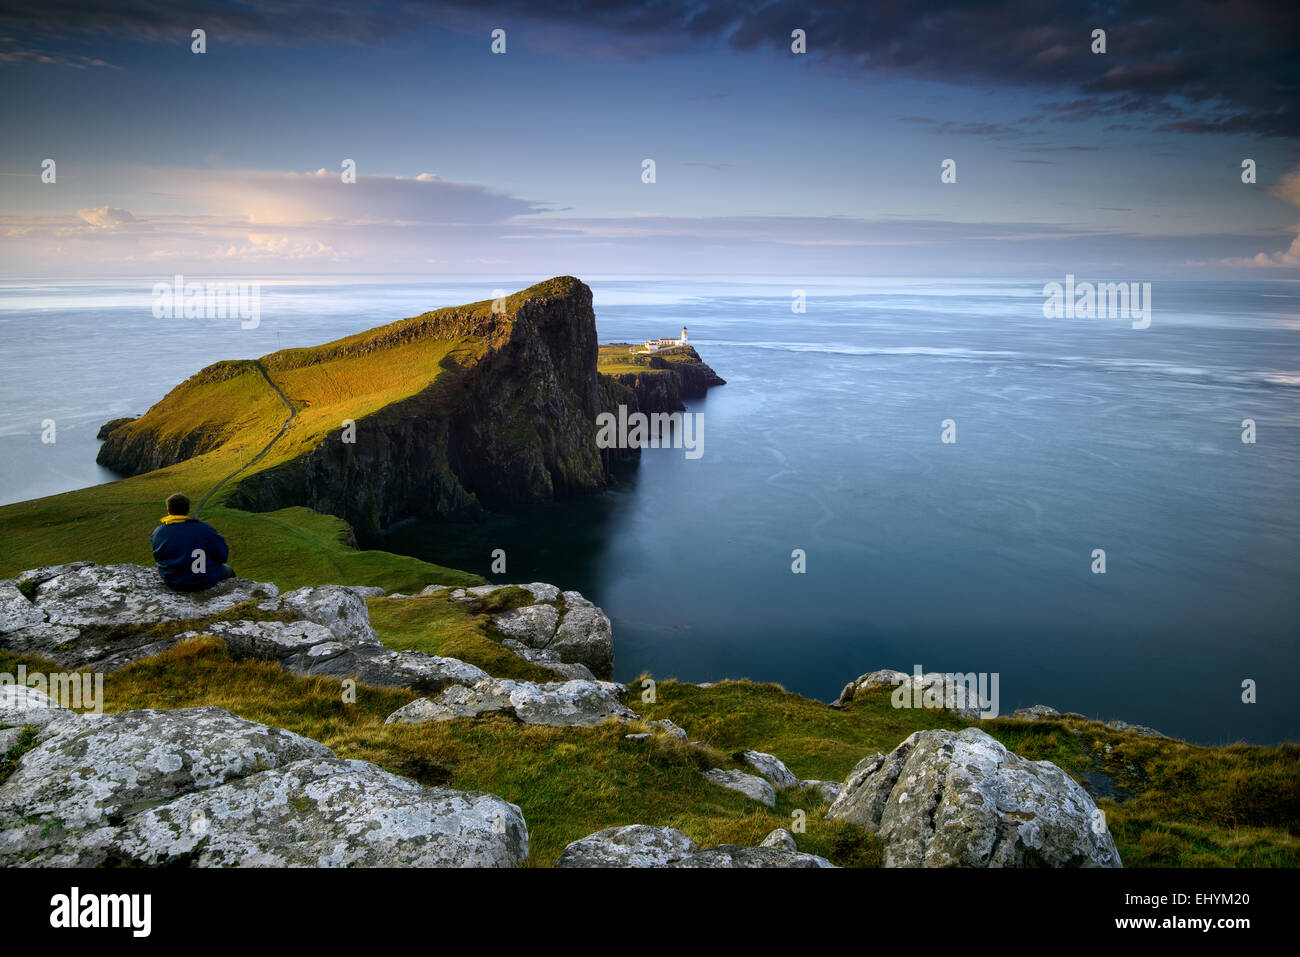 Mid adult man assis sur un rocher surplombant la mer à Neist Point, Ecosse Photo Stock